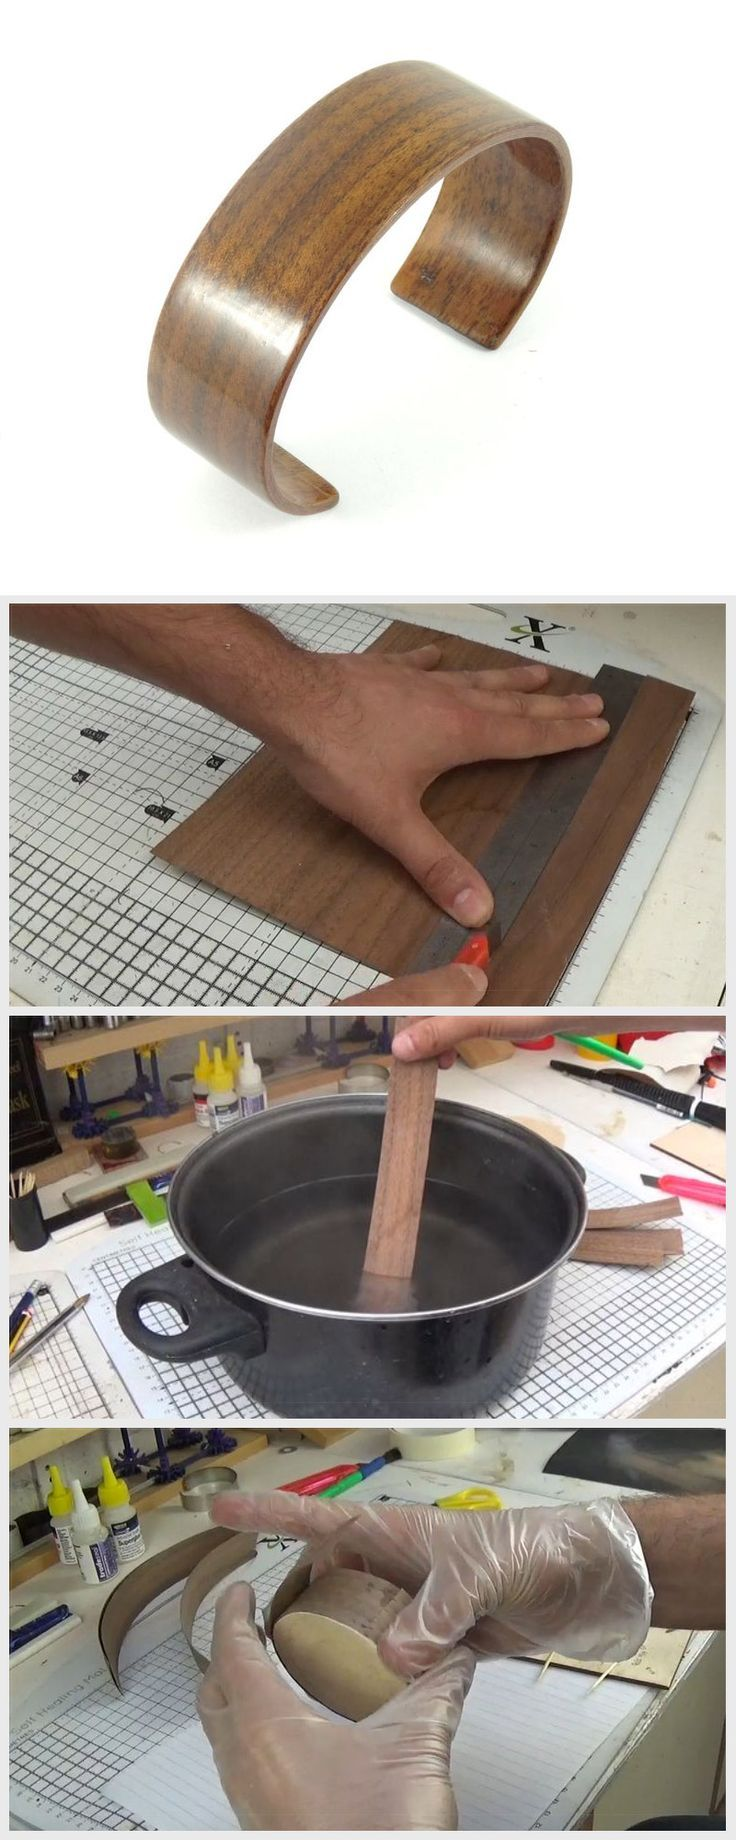 The blog on tumblr has excellent direction and also ideas to hardwood working.